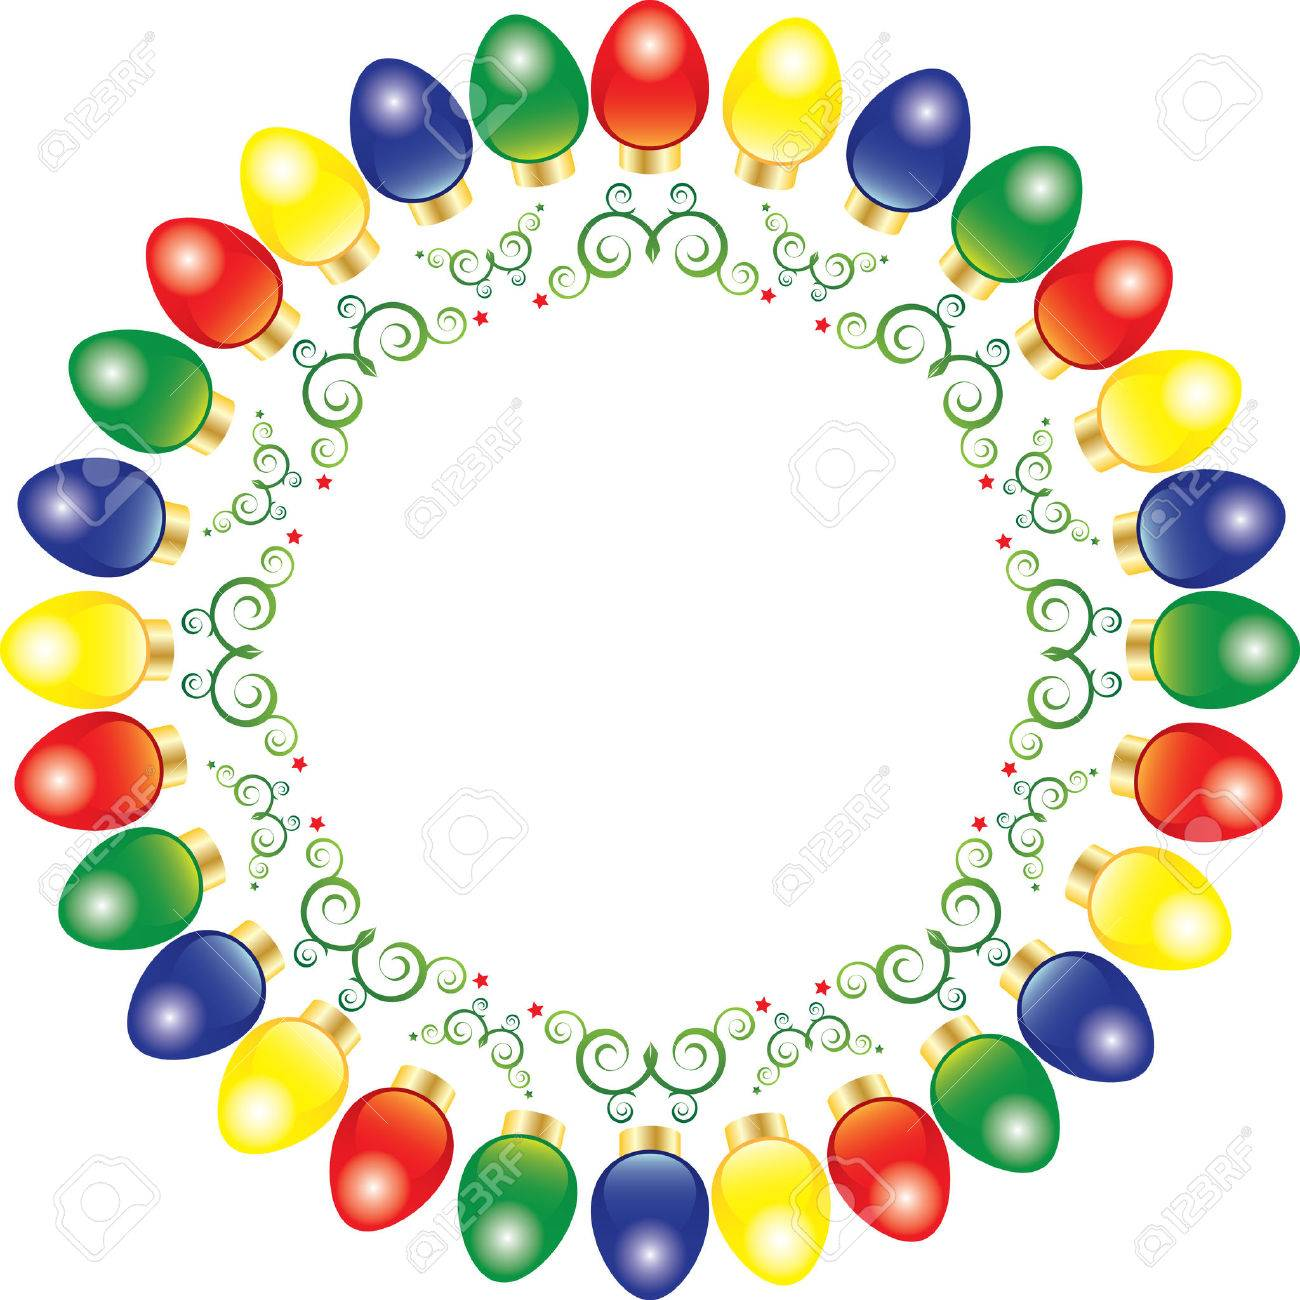 A Wreath Of Bright And Colorful Vector Christmas Lights Royalty ...